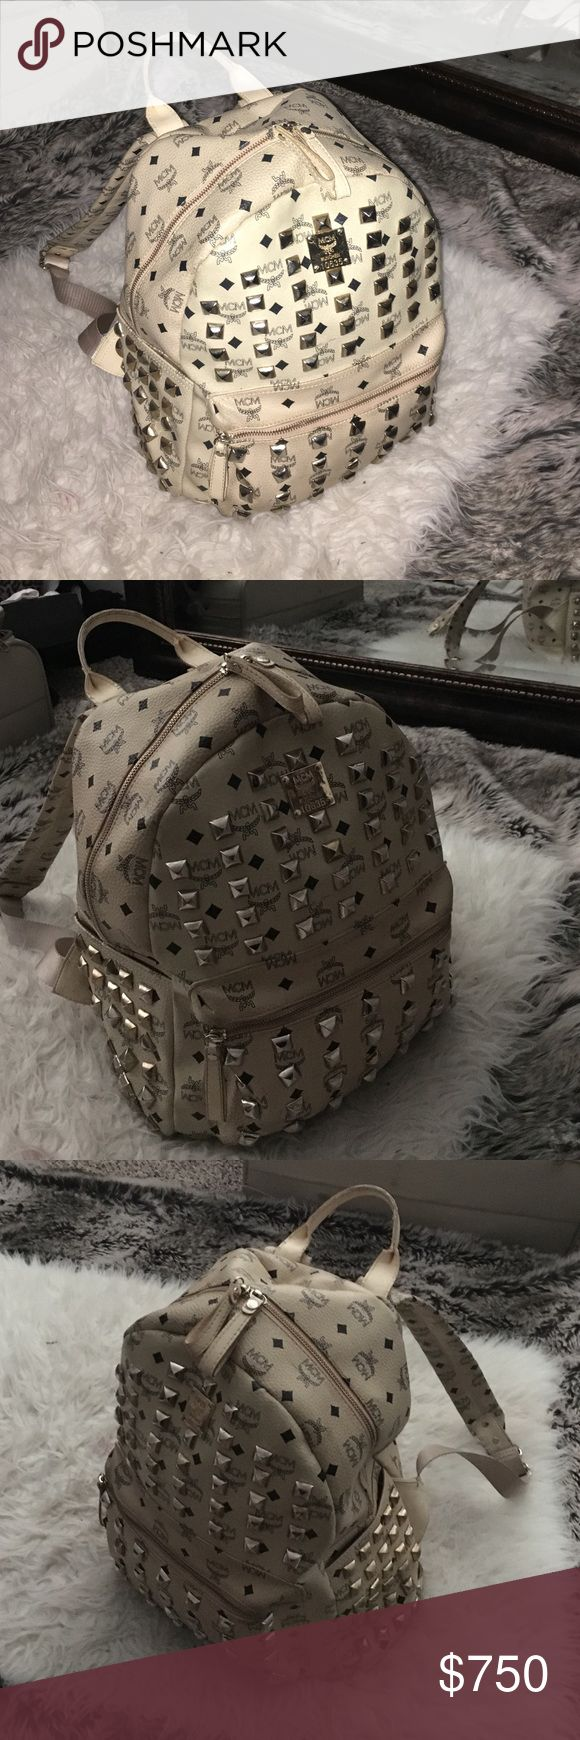 MCM Studded bookbag!!! Great condition!!! MCM Bookbag, leather, no studs missing, authentic, bought around 2 years ago, willing to trade for Louis Vuitton bookbag, Gucci bookbag, or Chanel bookbag!!! (Or other designer bookbag) ✨✨✨ MCM Bags Backpacks